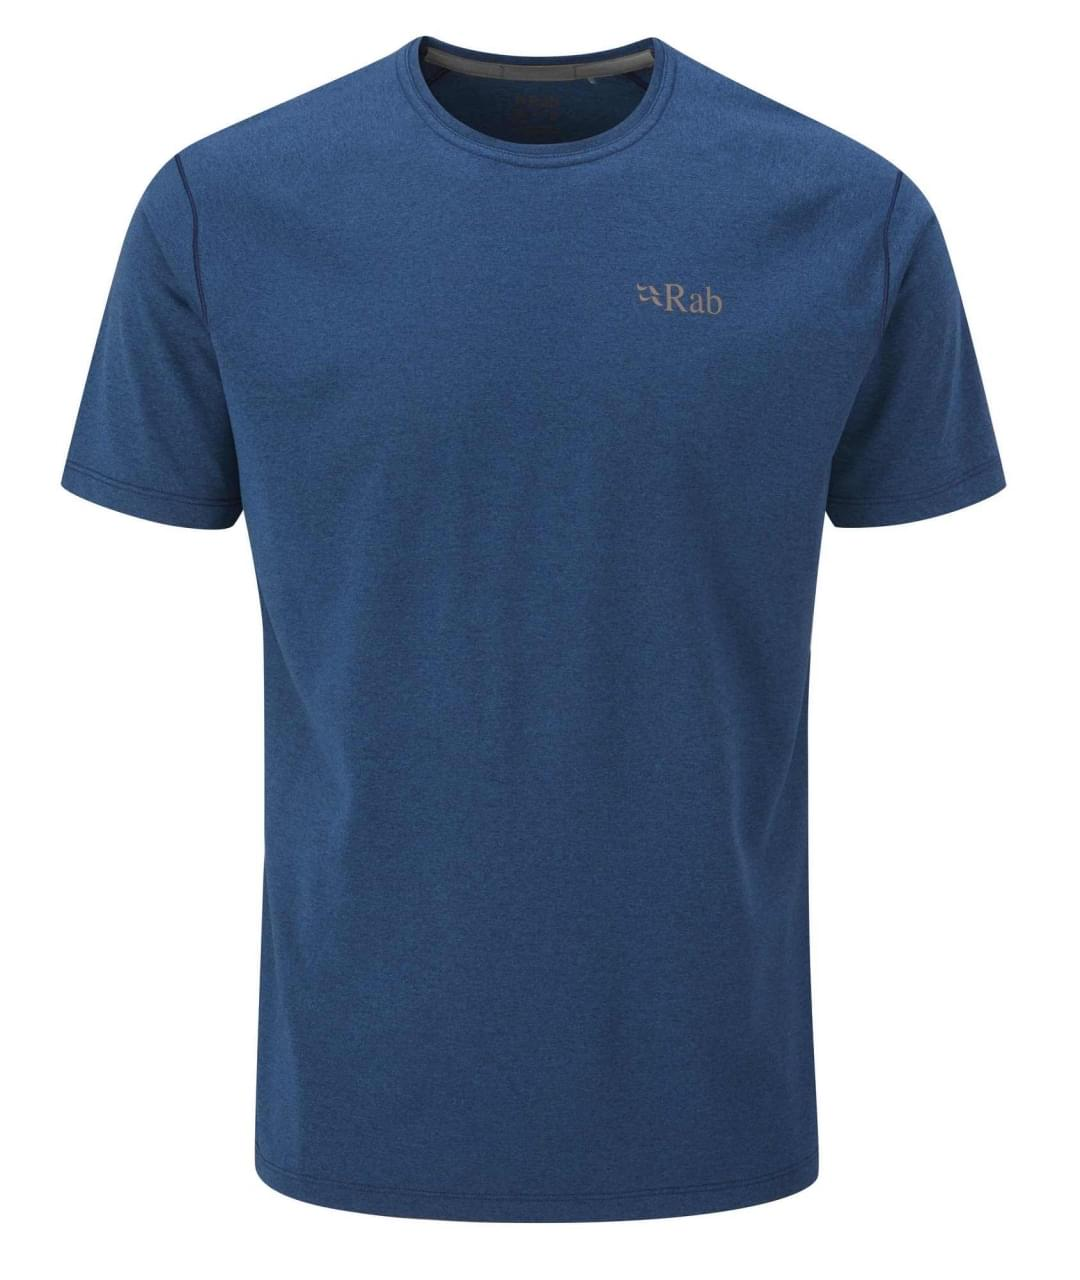 RAB Mantle Tee T-Shirt Heren Blauw